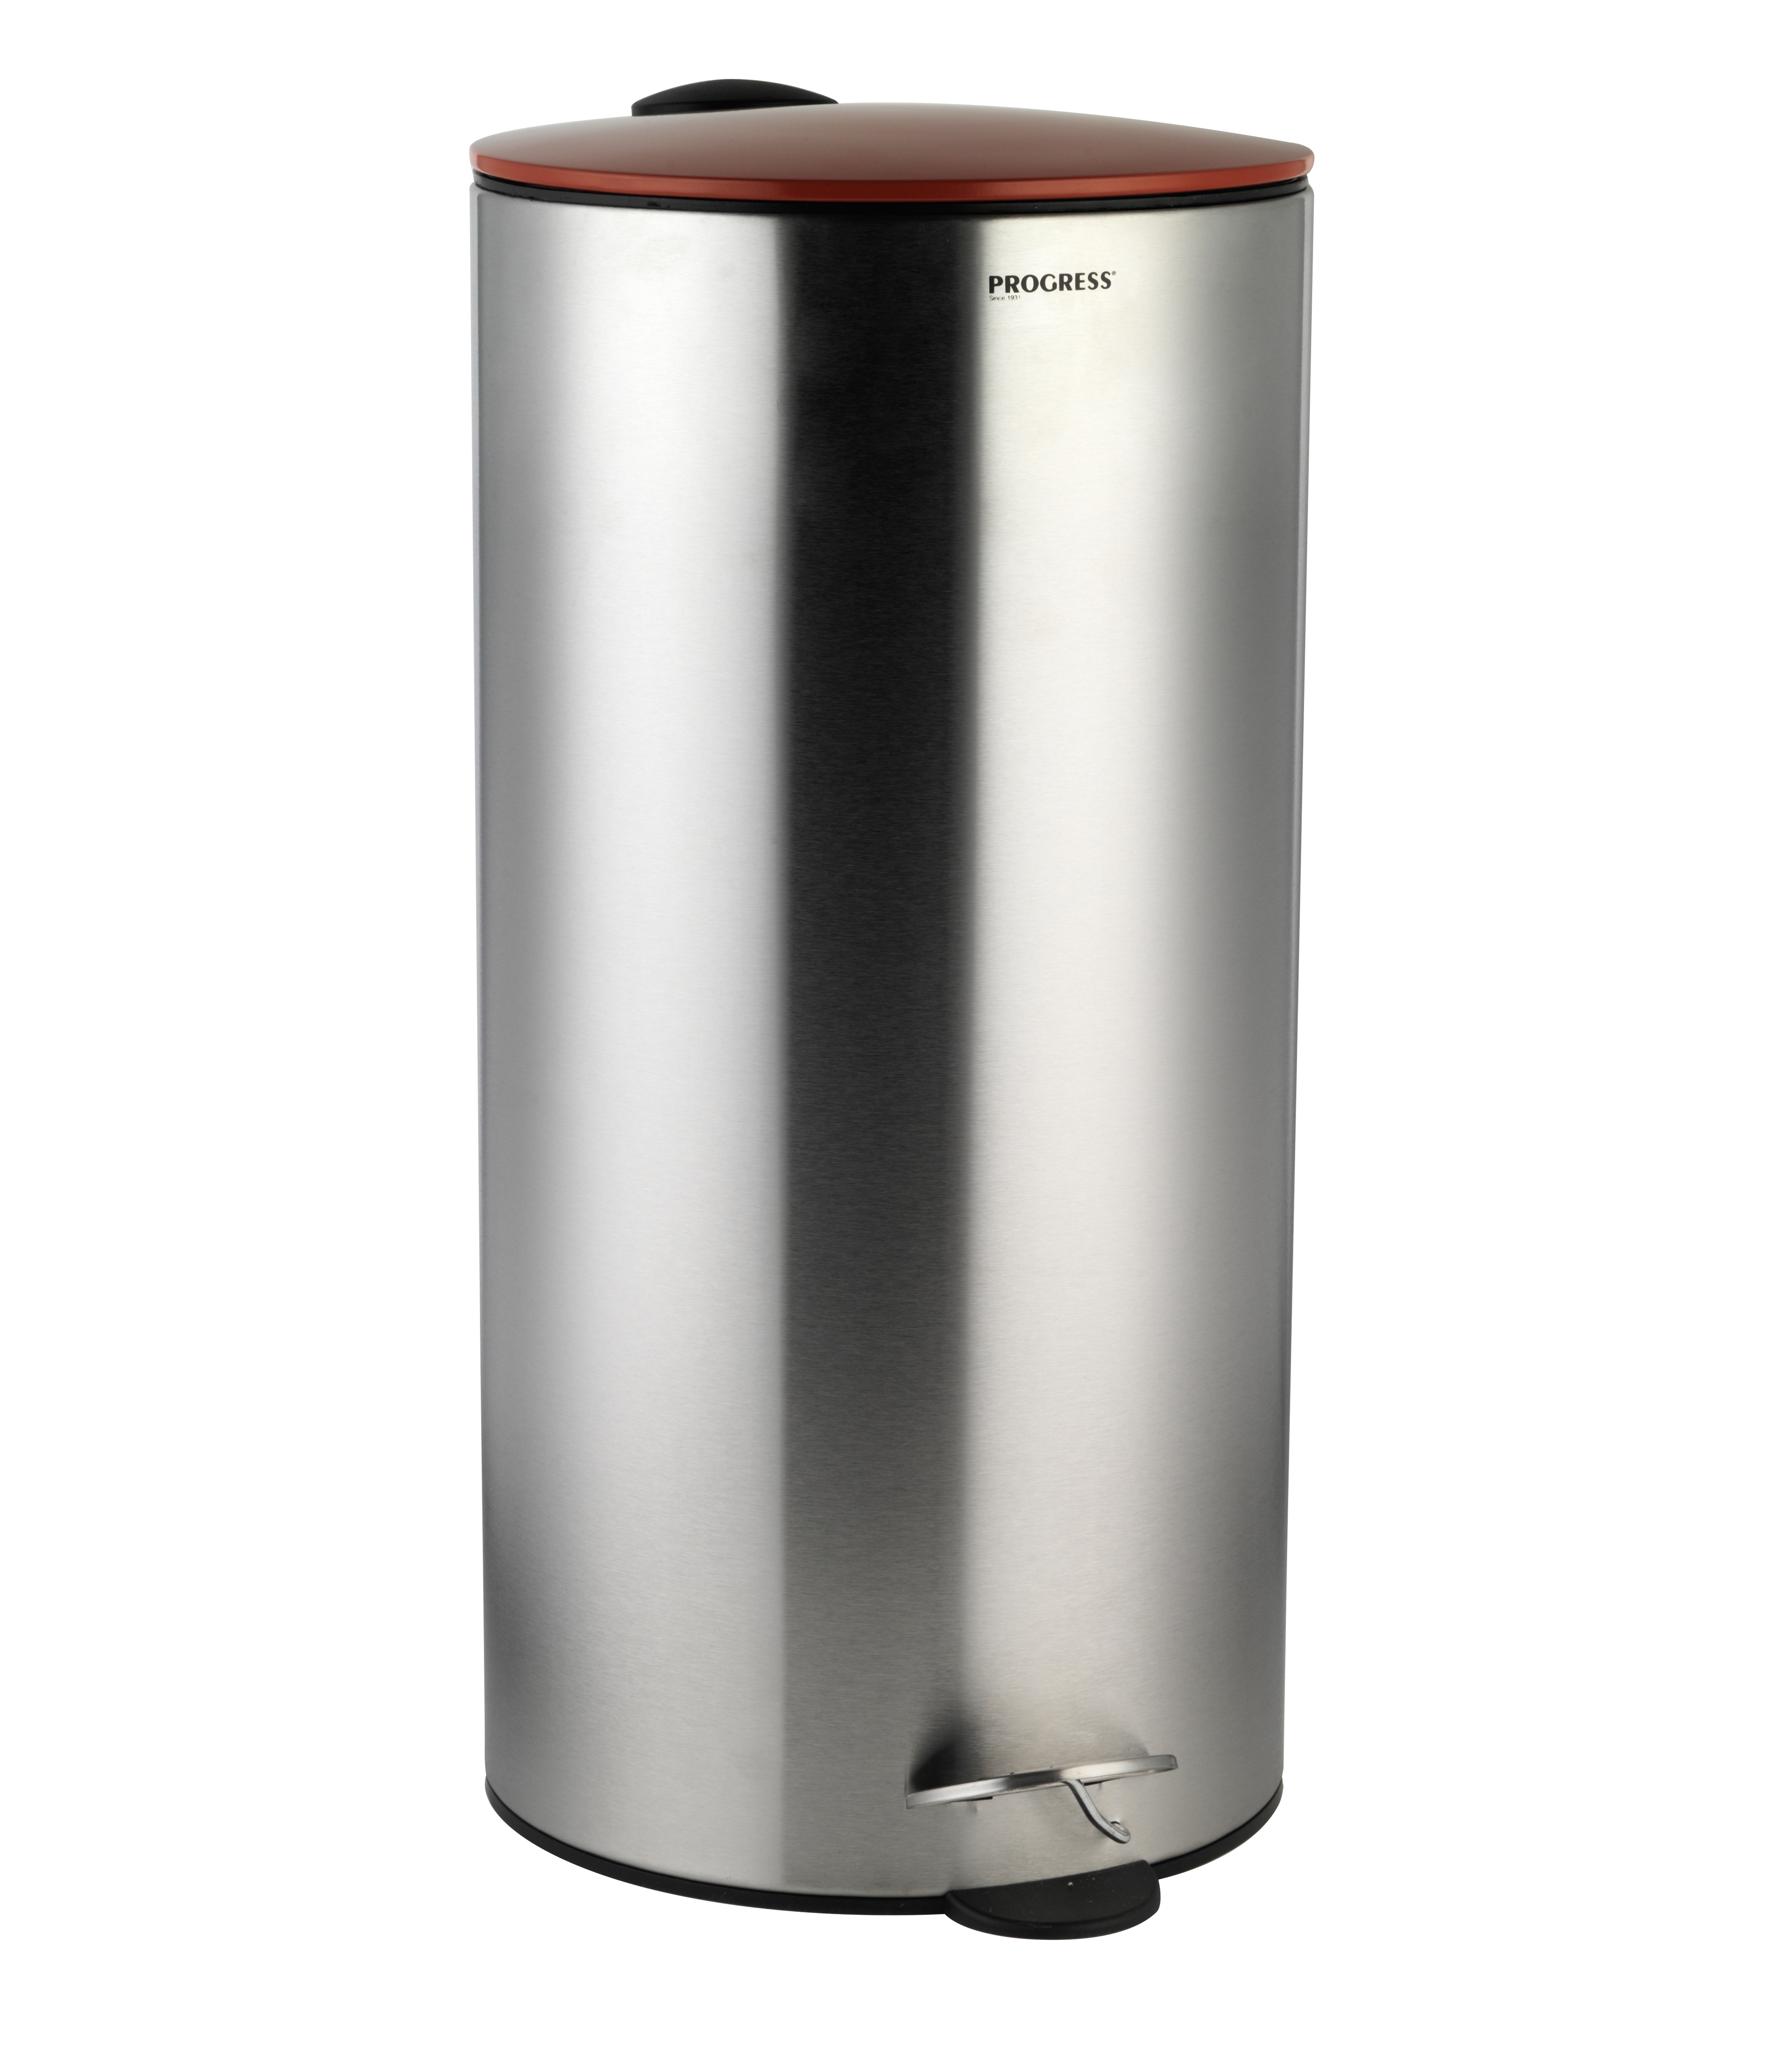 Progress 30 Litre Stainless Steel Pedal Bin with Red Soft Closing ...